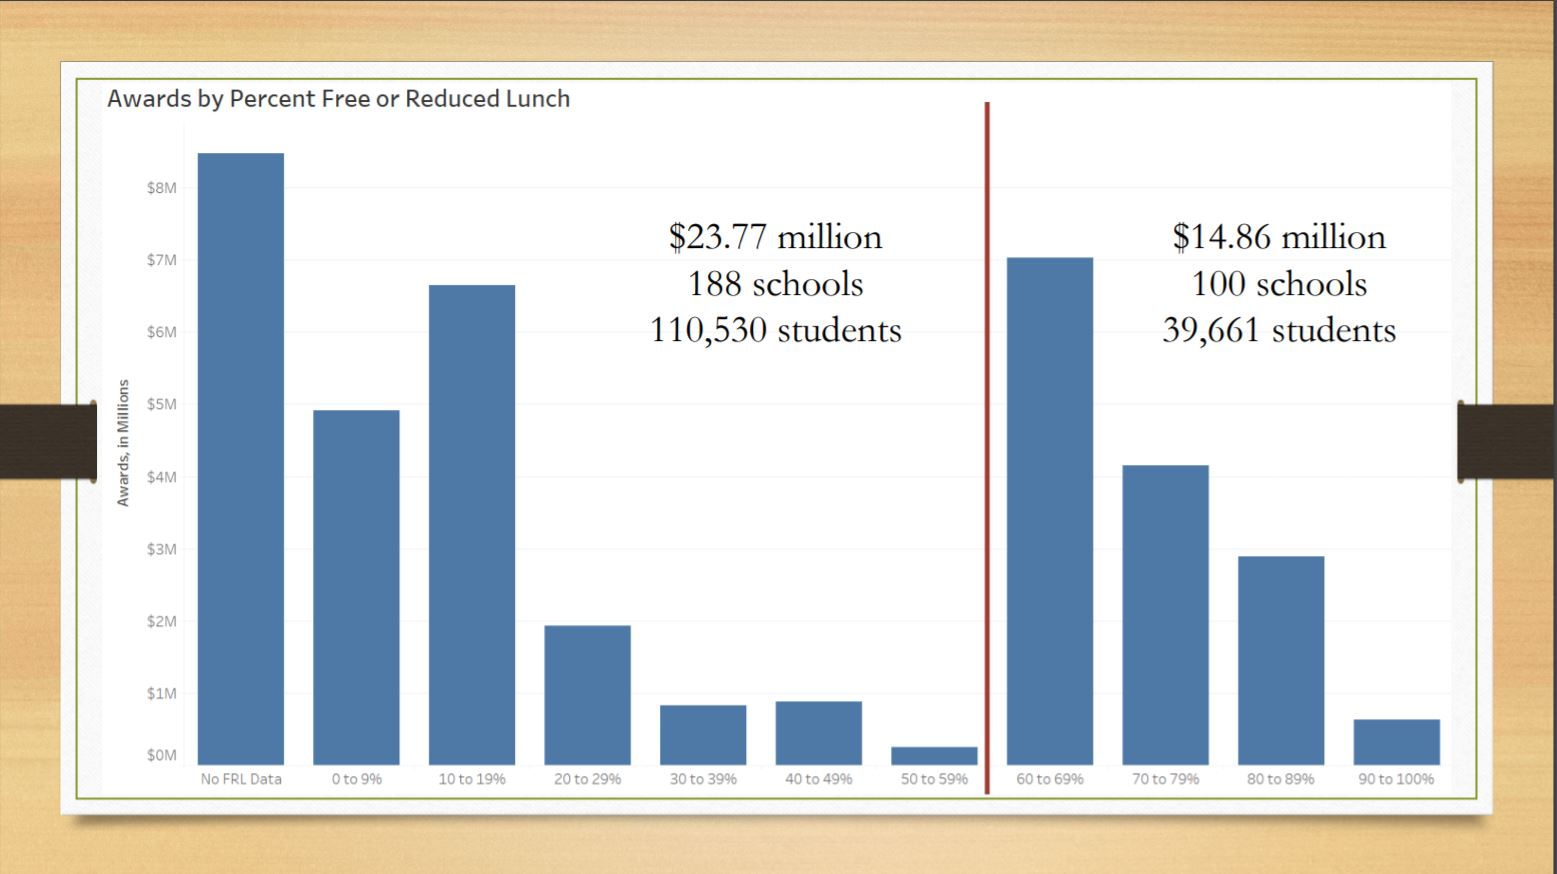 Results-based funding bypasses vulnerable students AwardsByFreeAndReducedLunchChart